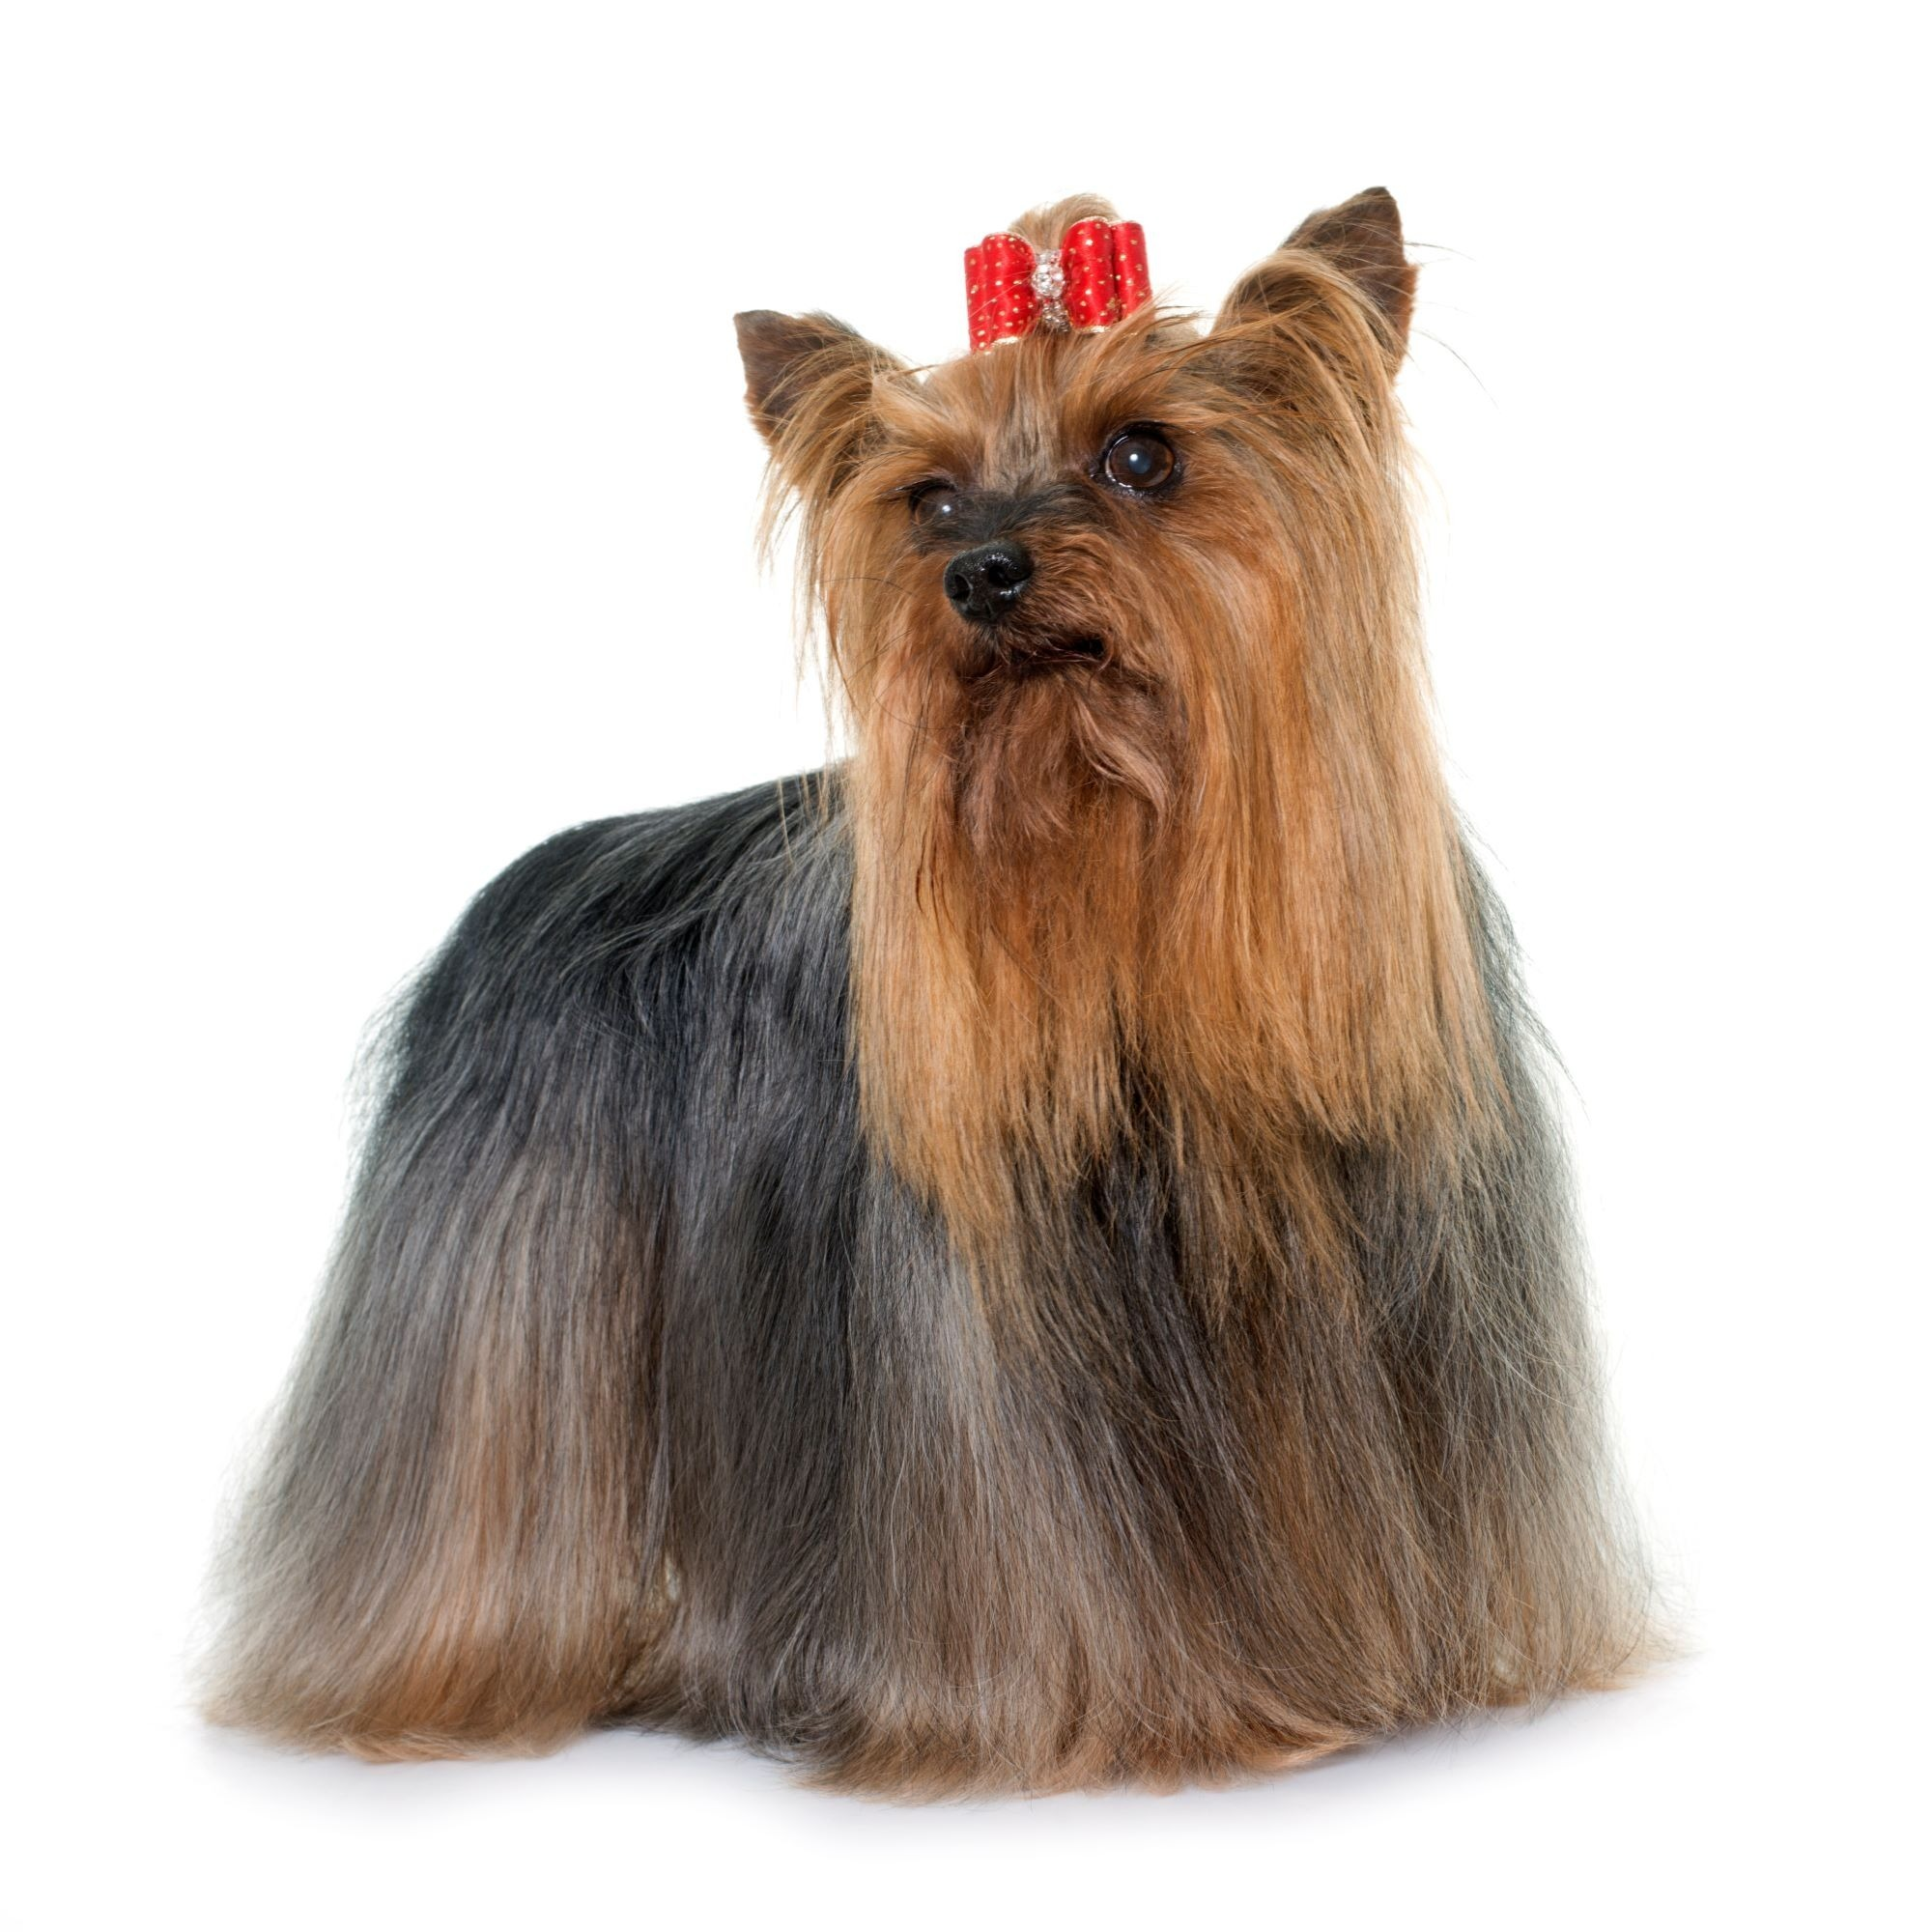 Adult Yorkshire Terrier